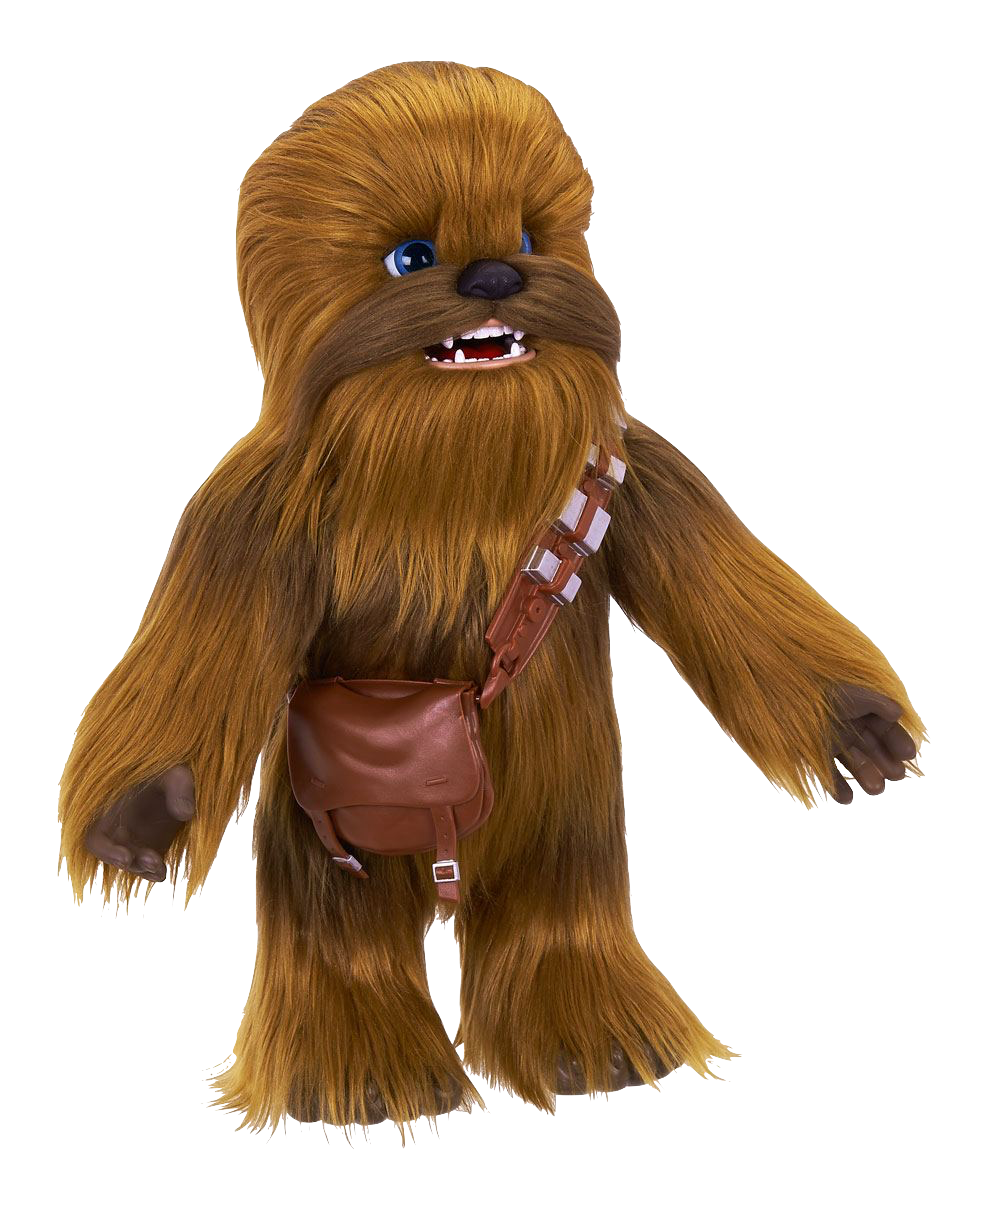 hasbro-star-wars-solo-interactive-furreal-plush-figure-ultimate-co-pilot-chewie-toyslife